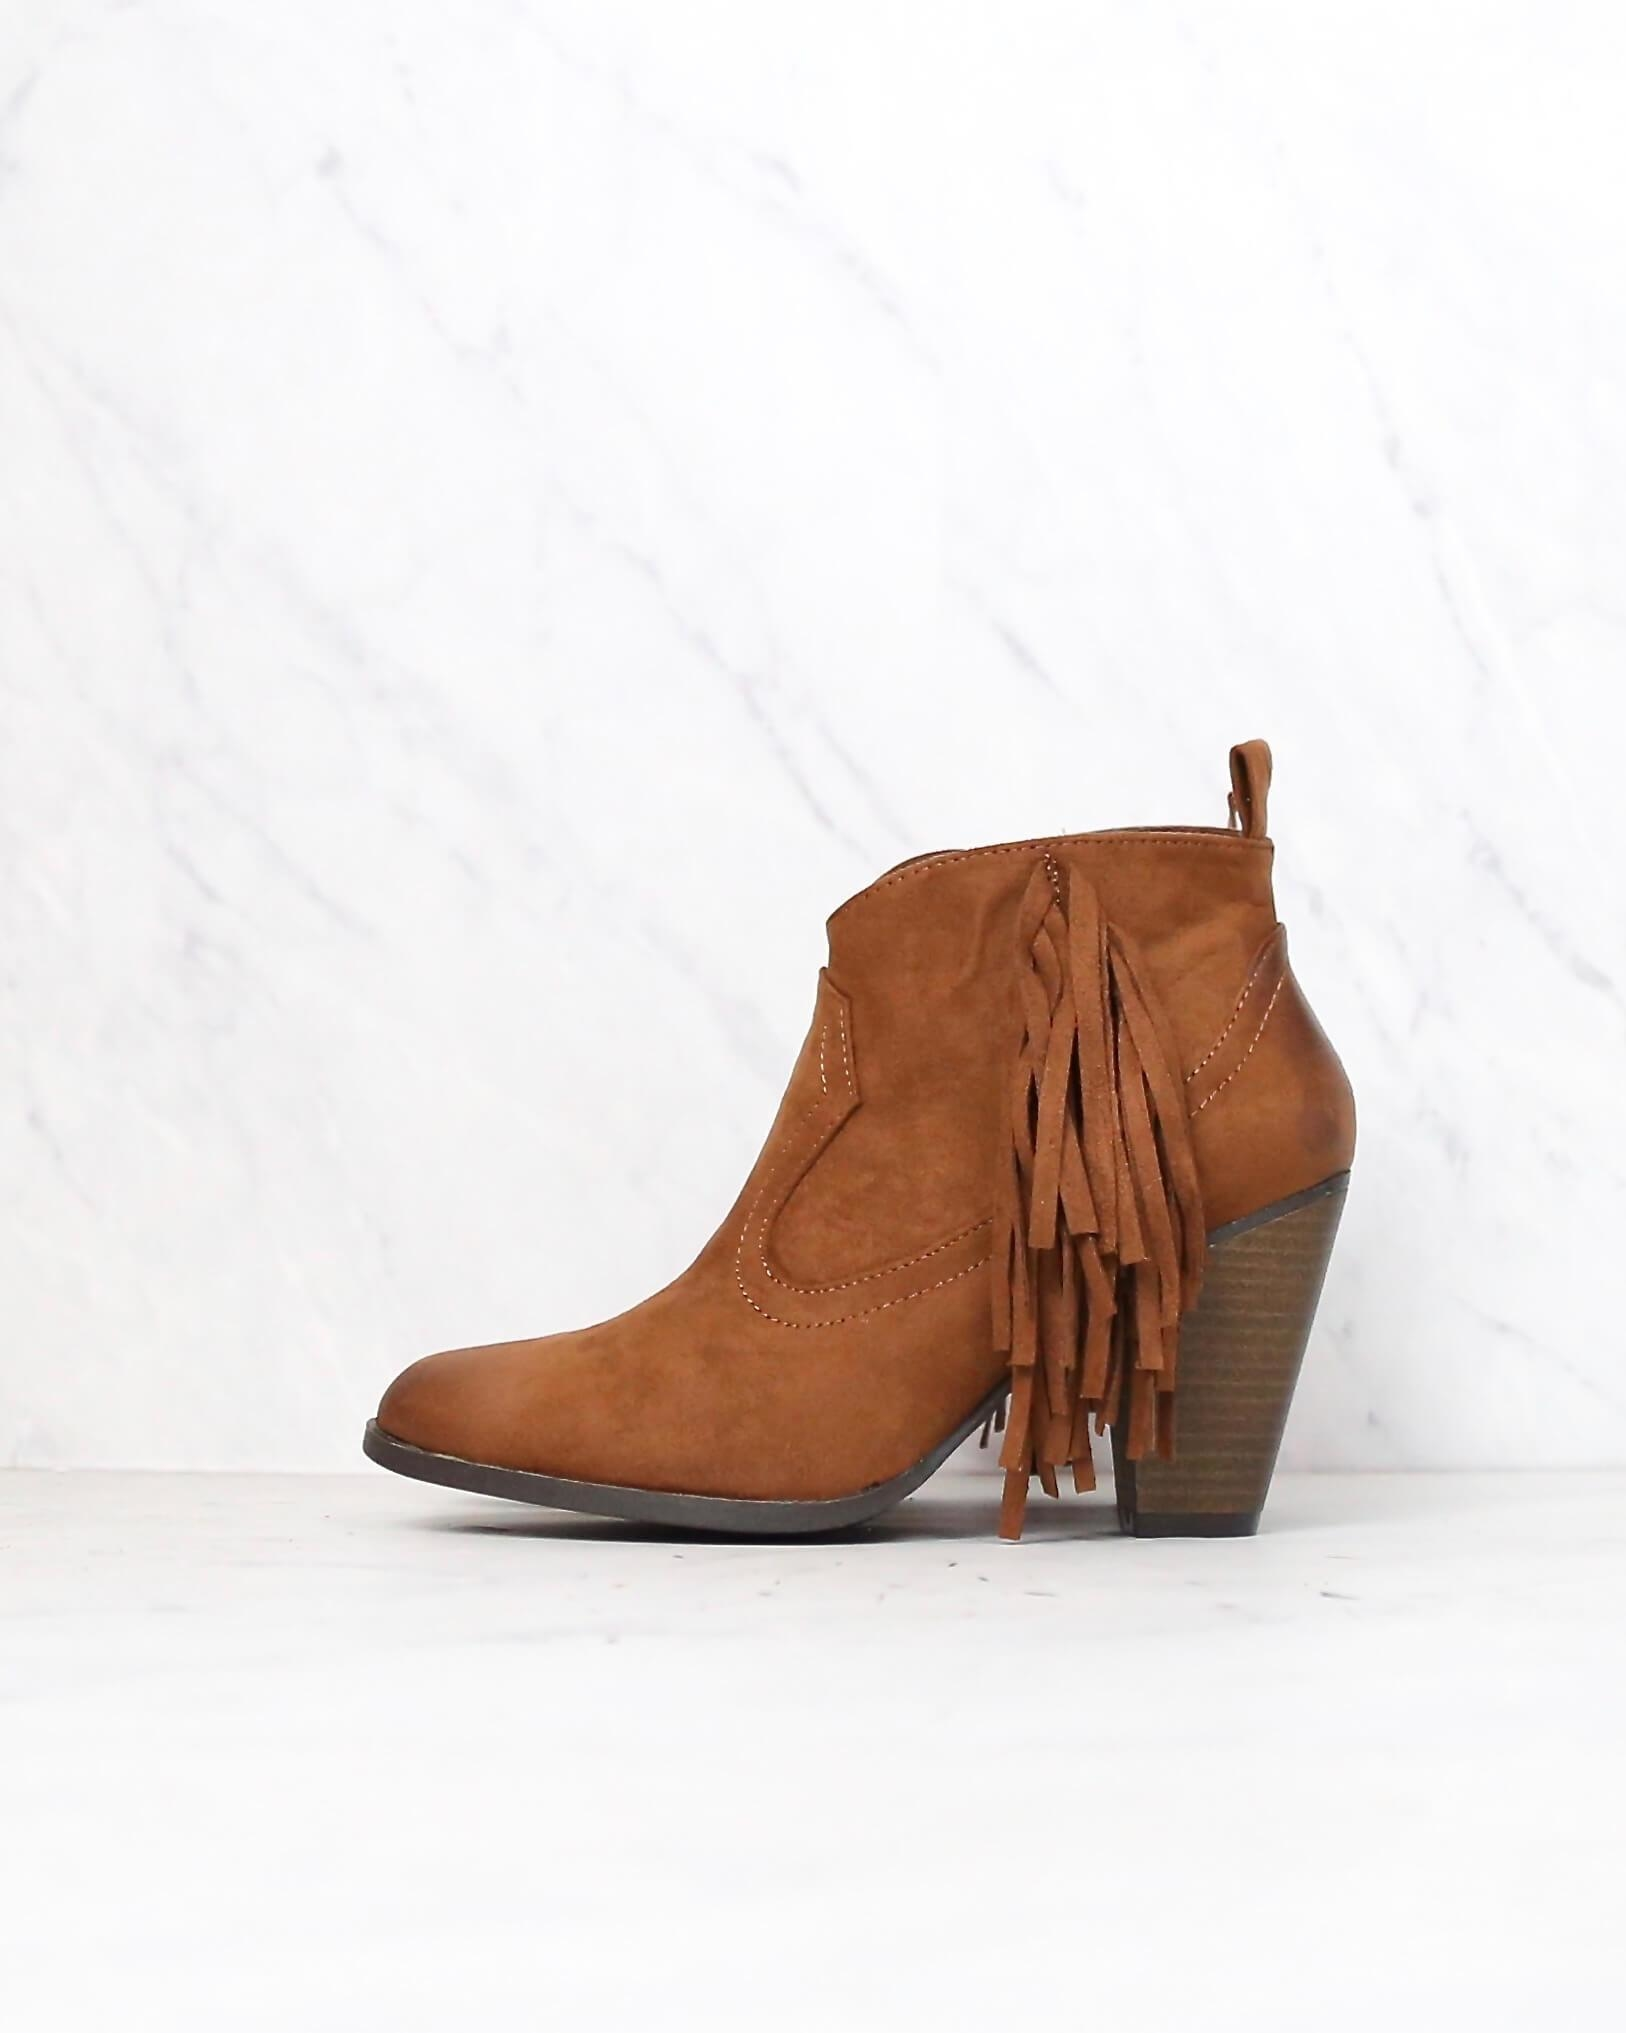 Image of Final Sale - Cara Fringe Ankle Boots in Rust